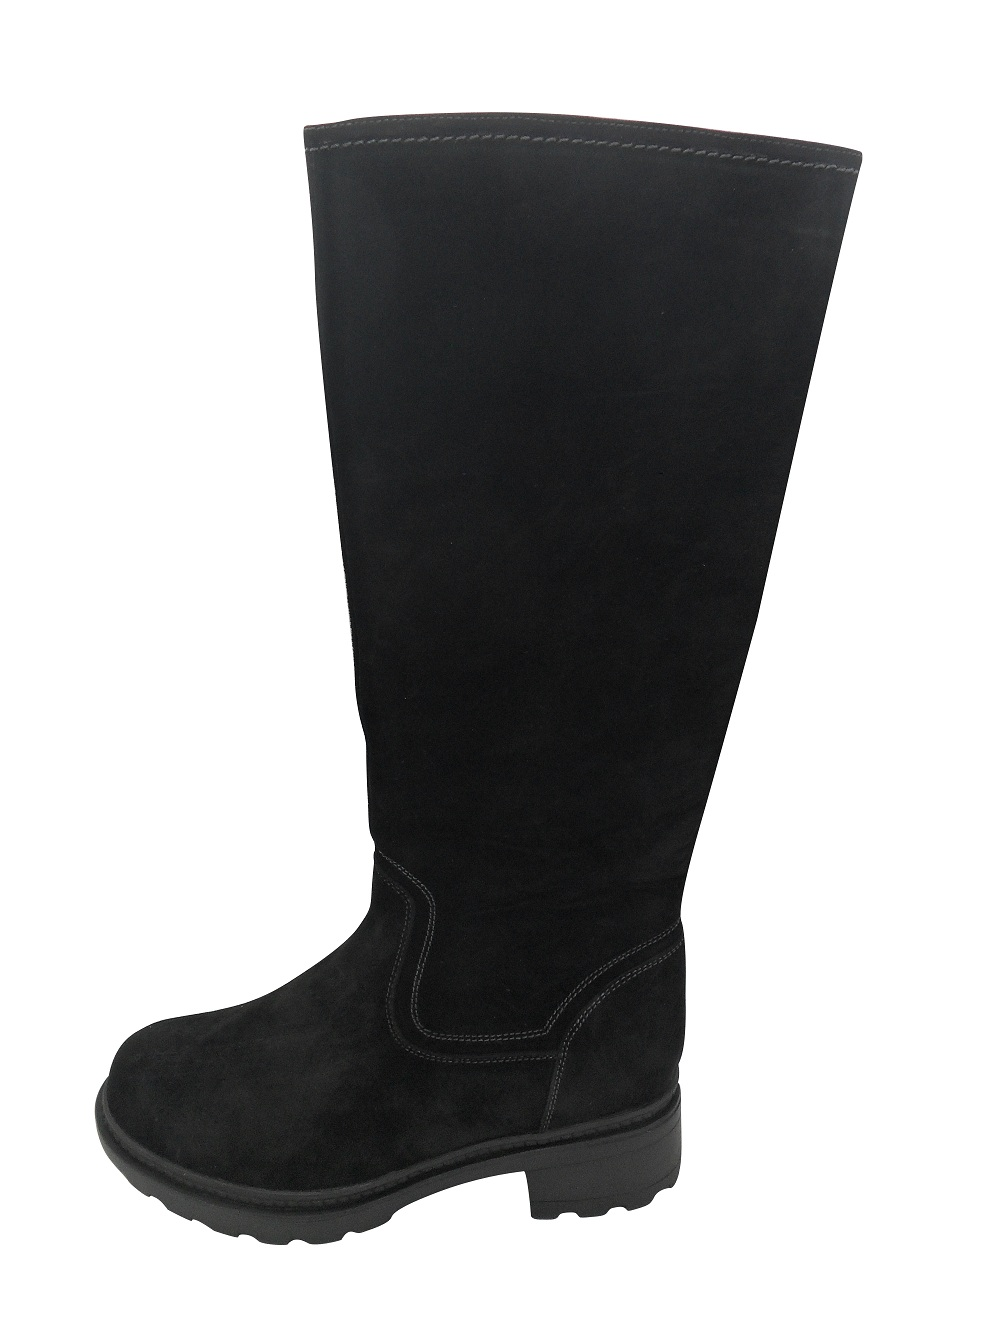 black long leather boots with zipper(FRANKY BLACK,BRAND:CARE)